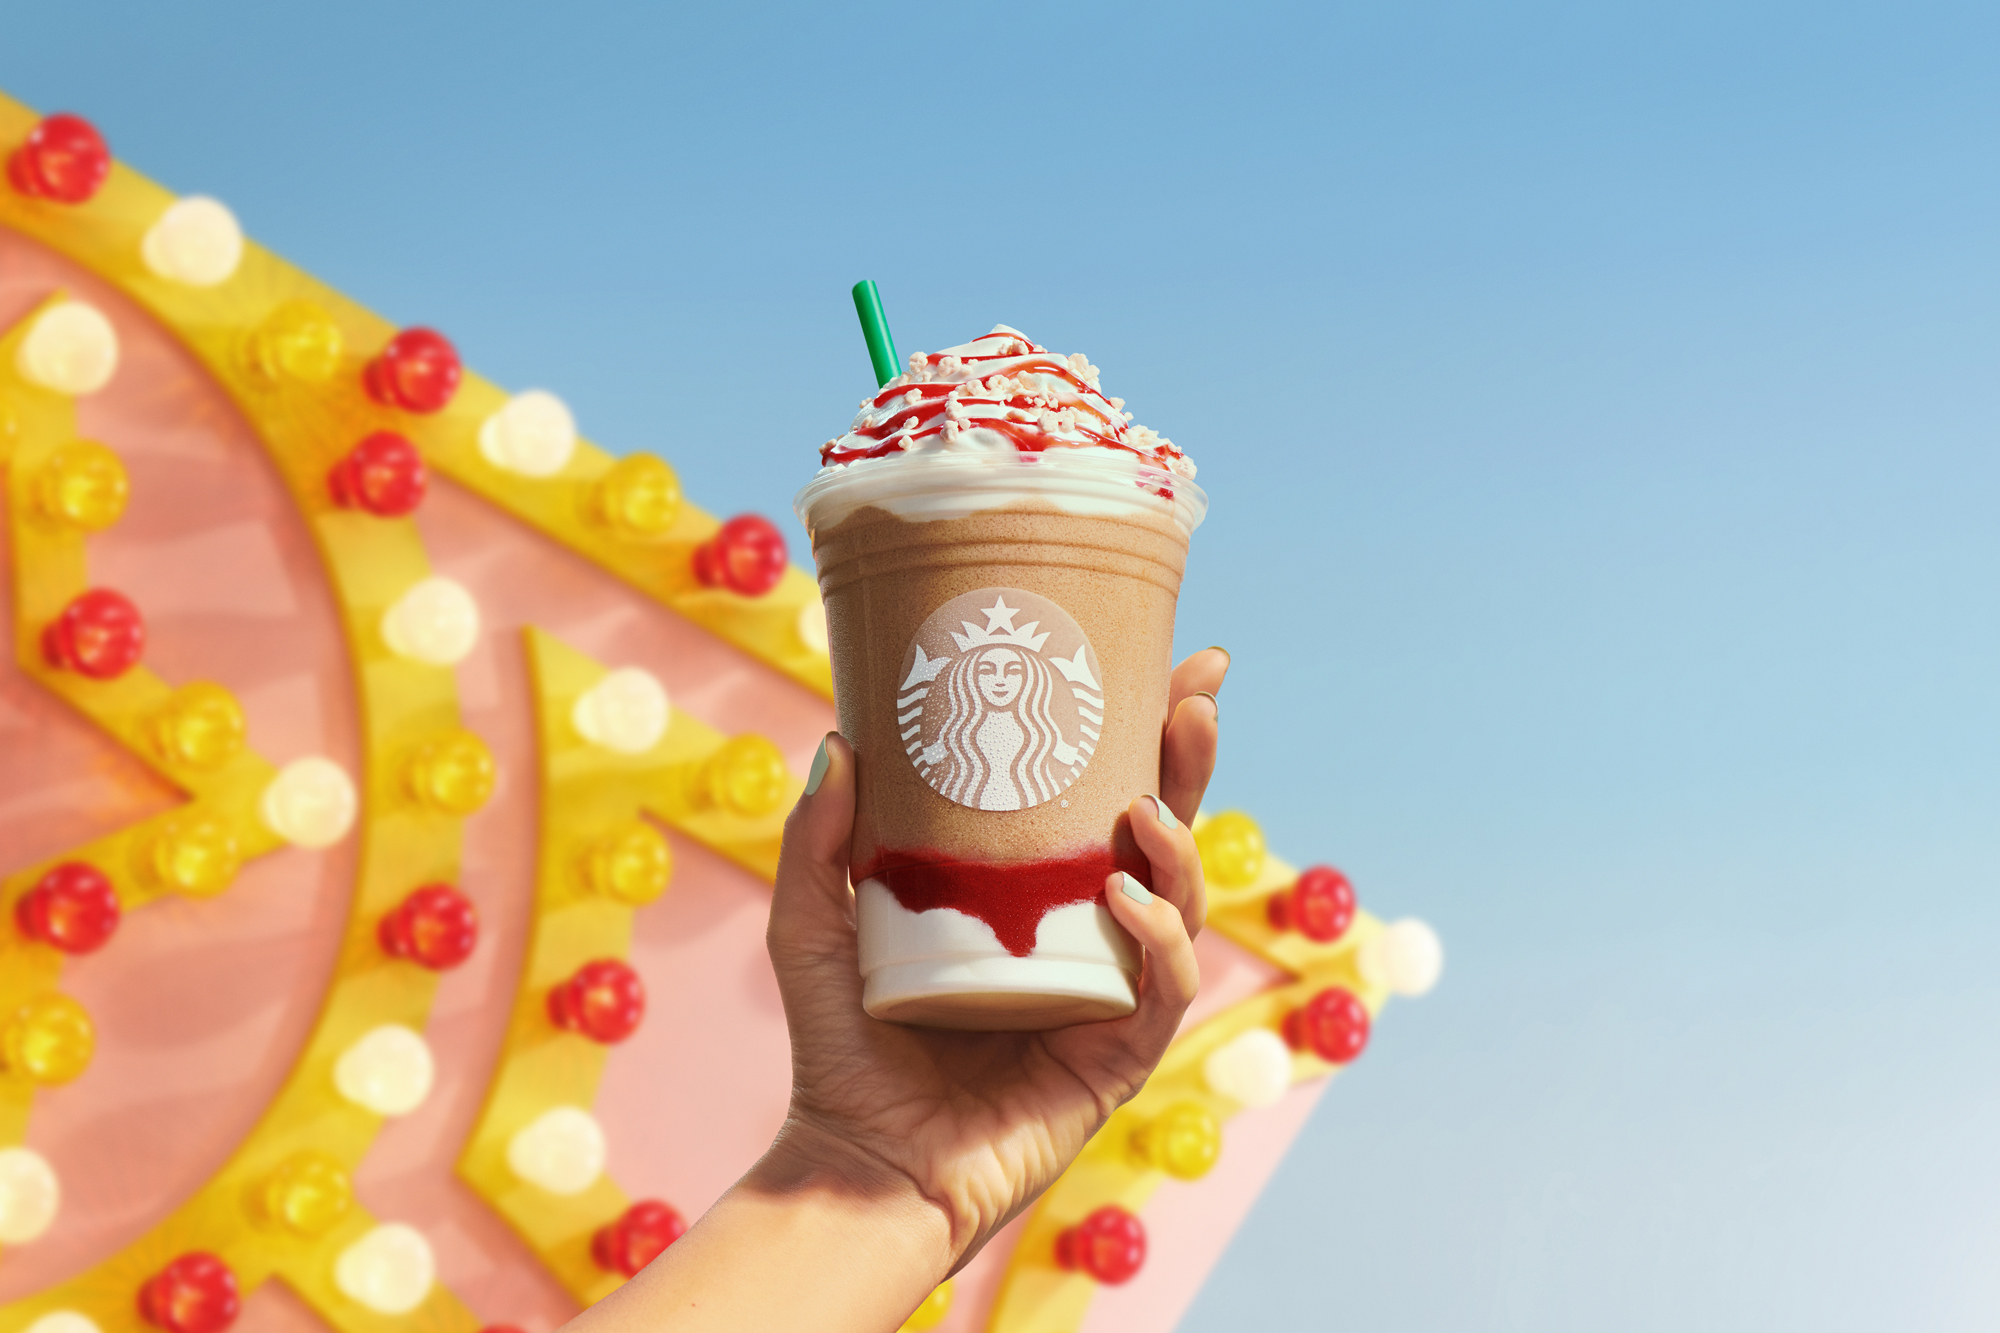 Starbucks Strawberry Funnel Cake Frappuccino